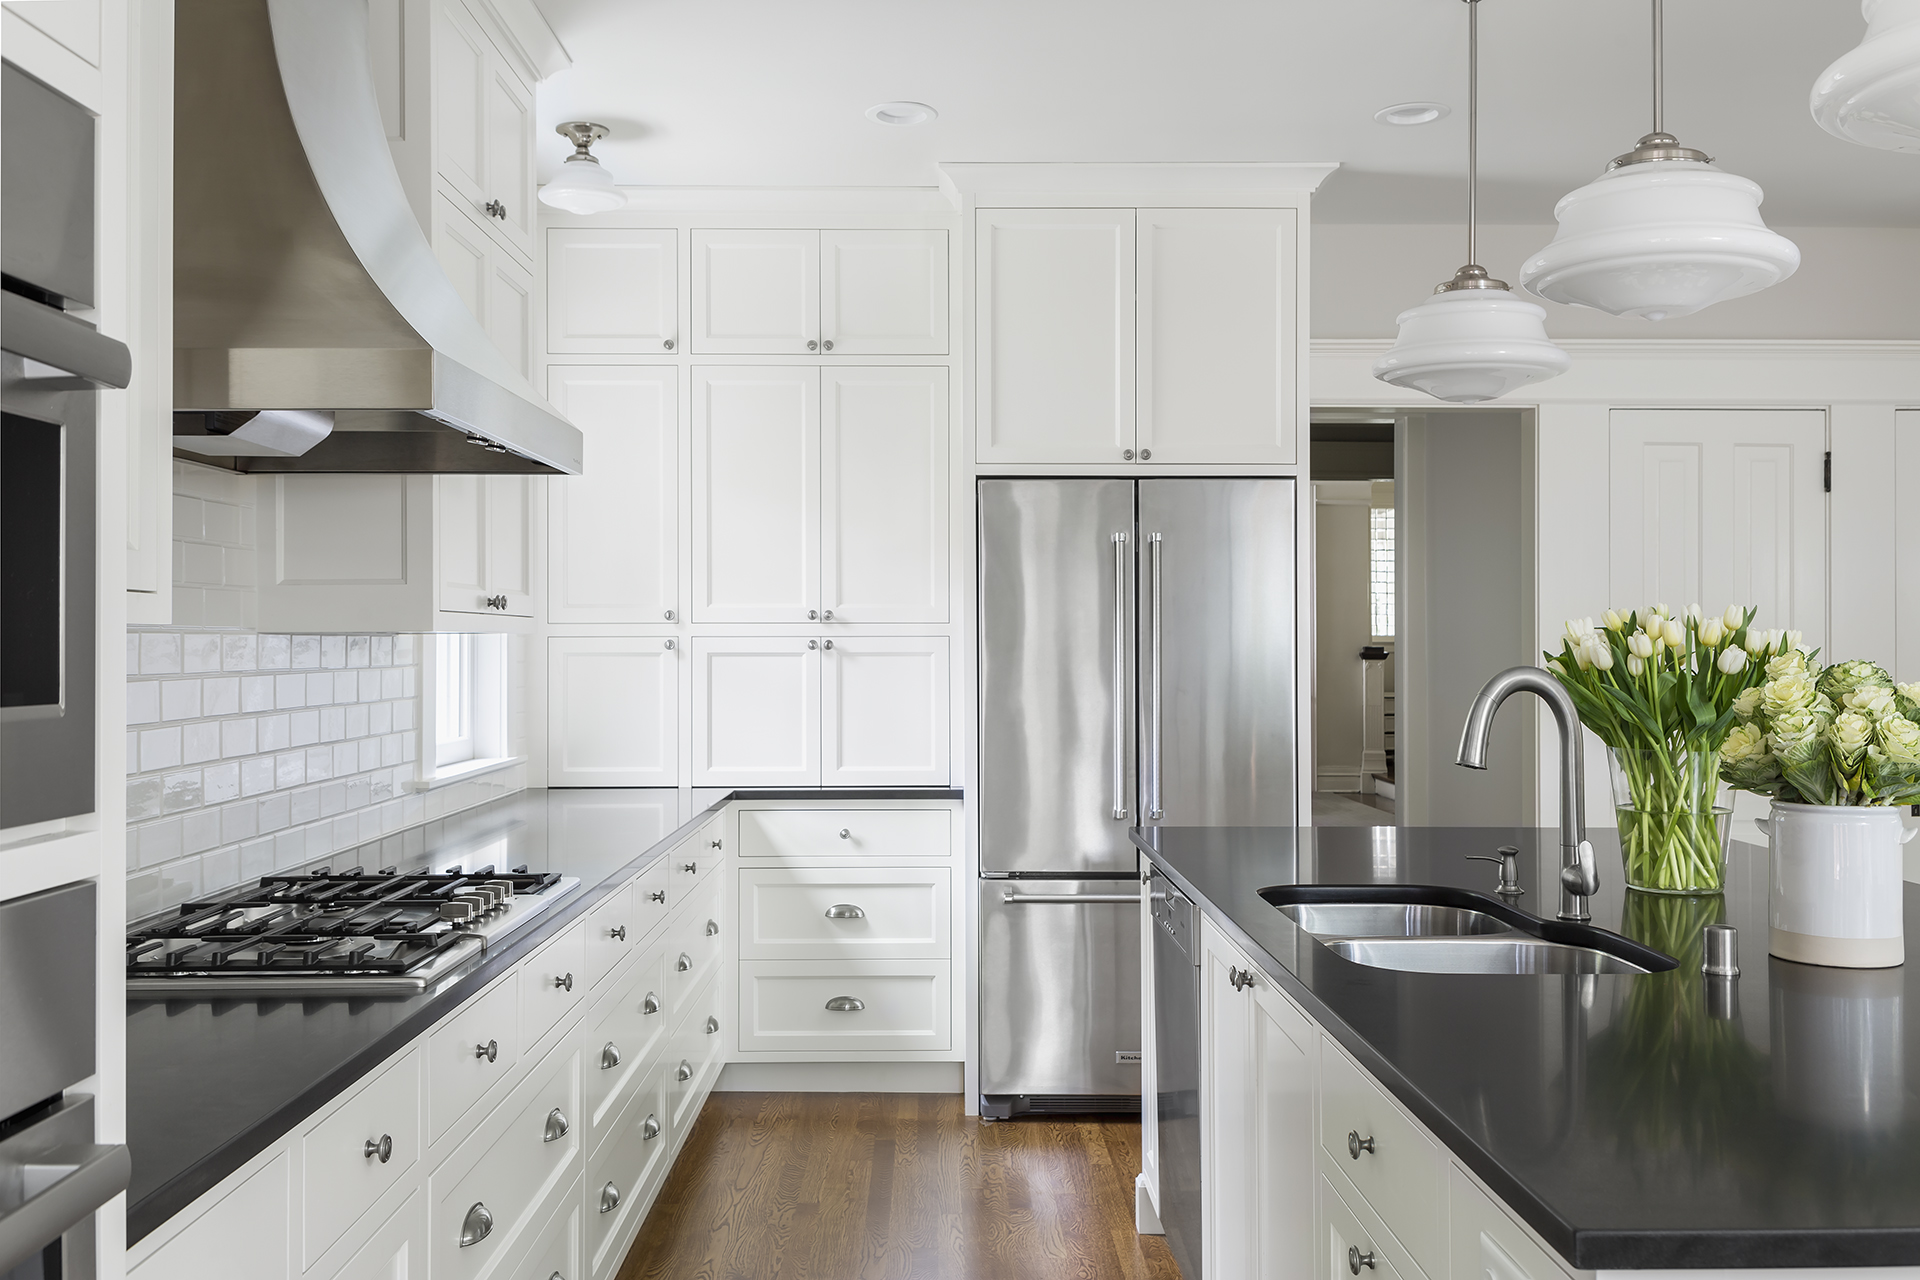 Ample storage was high on the homeowners wish list. This was achieved through a new layout with abundant cabinets and a generously sized island that comfortably accommodates all five family members.